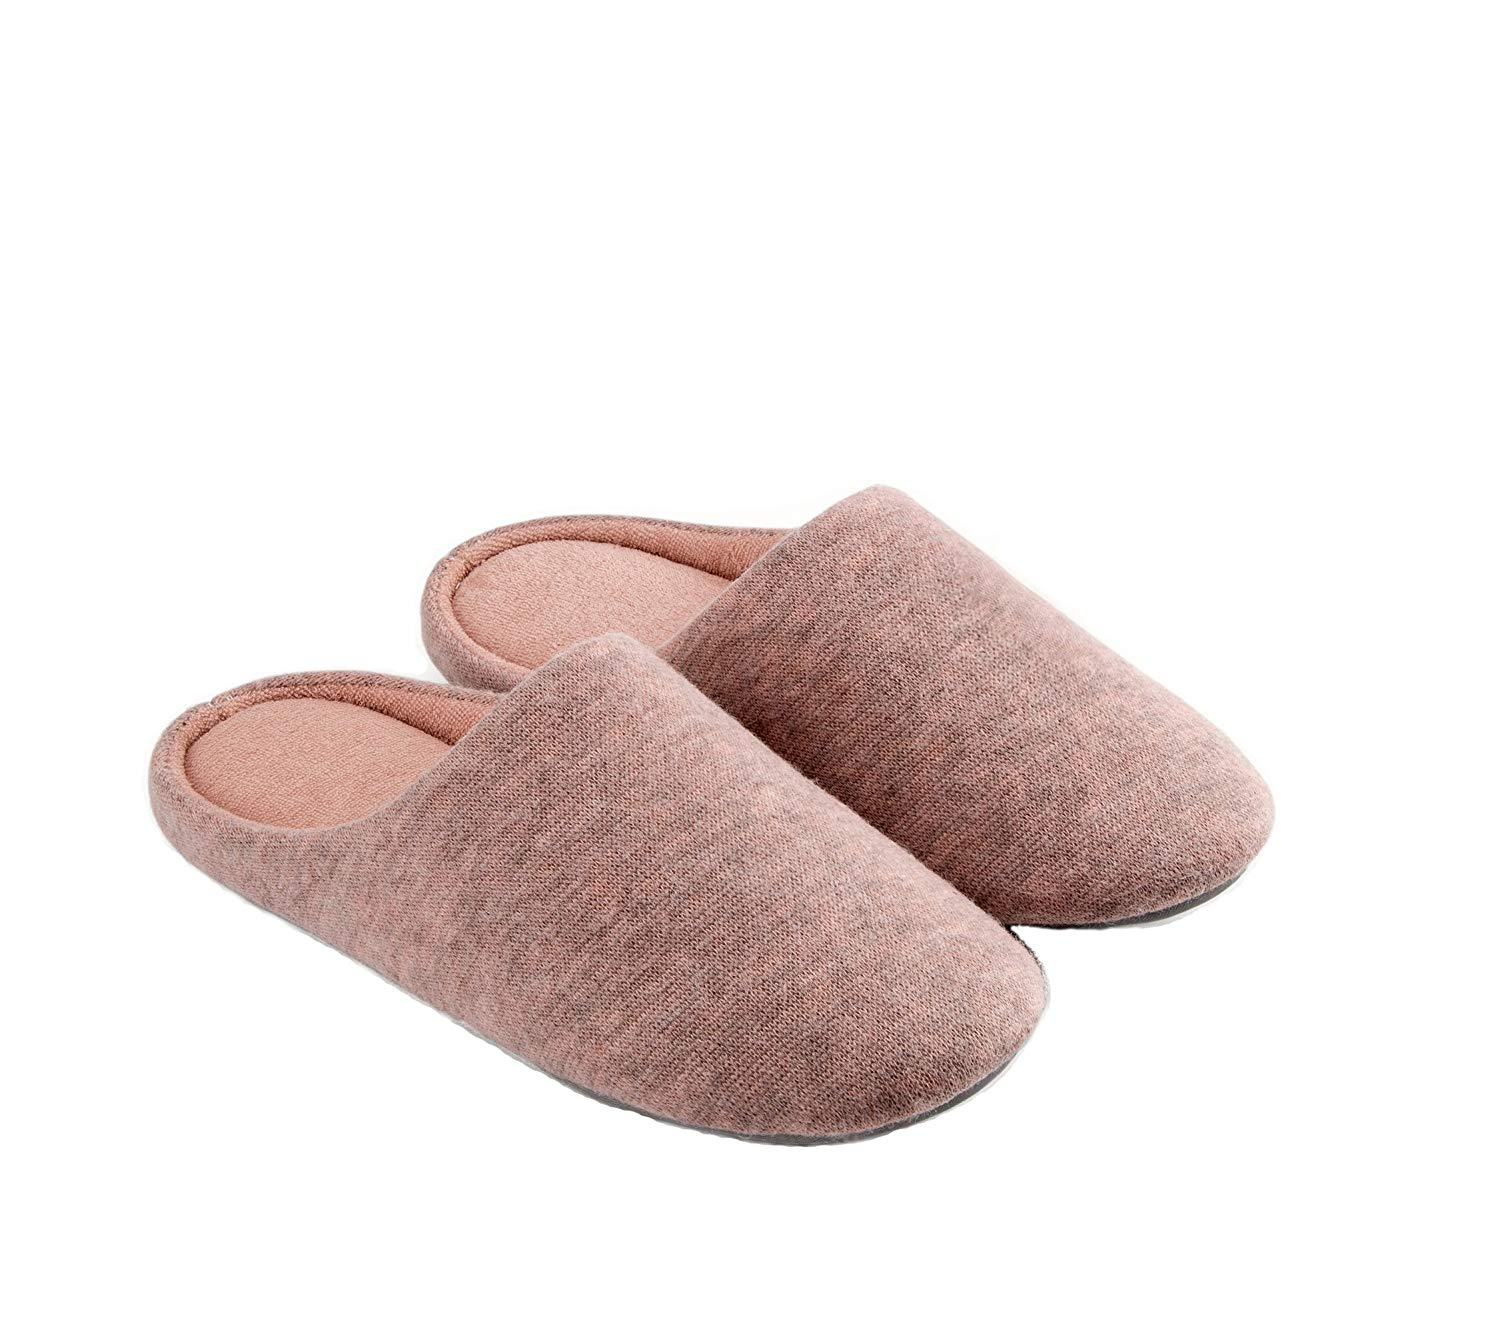 47b96ac3fcf Get Quotations · YanYeeh Slippers for Women Womens Slippers Pink Slippers  House Slippers Bedroom Indoor Outdoor Arch Support Slipper